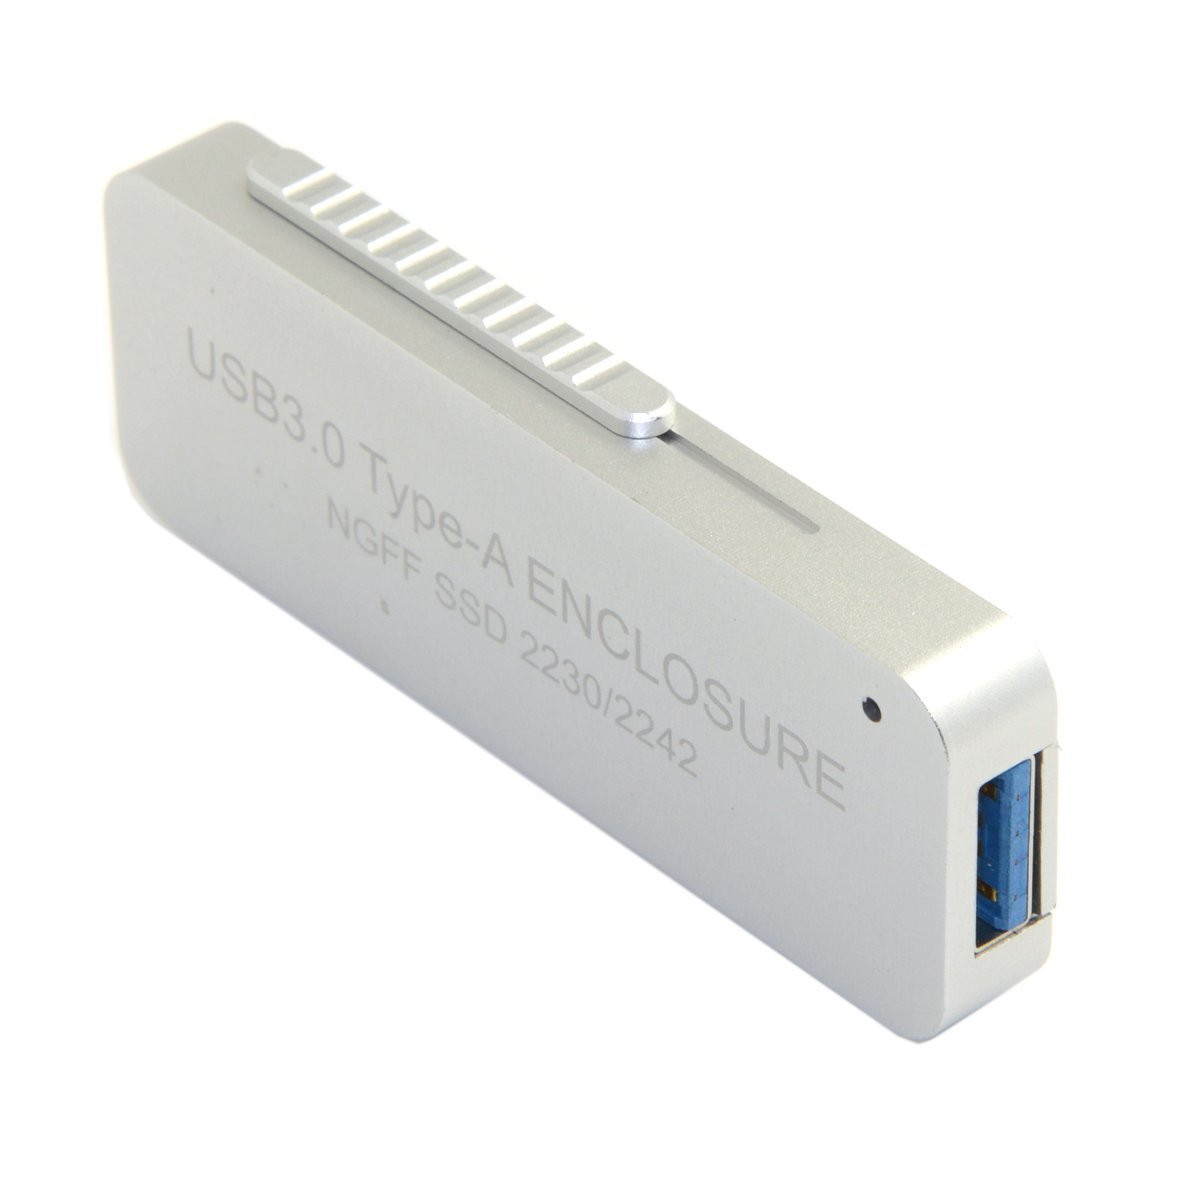 CY NGFF M.2 B-key or B/M-key SSD to USB 3.0 External PCBA Conveter Retractable Adapter Card Flash Disk Type Silver Color